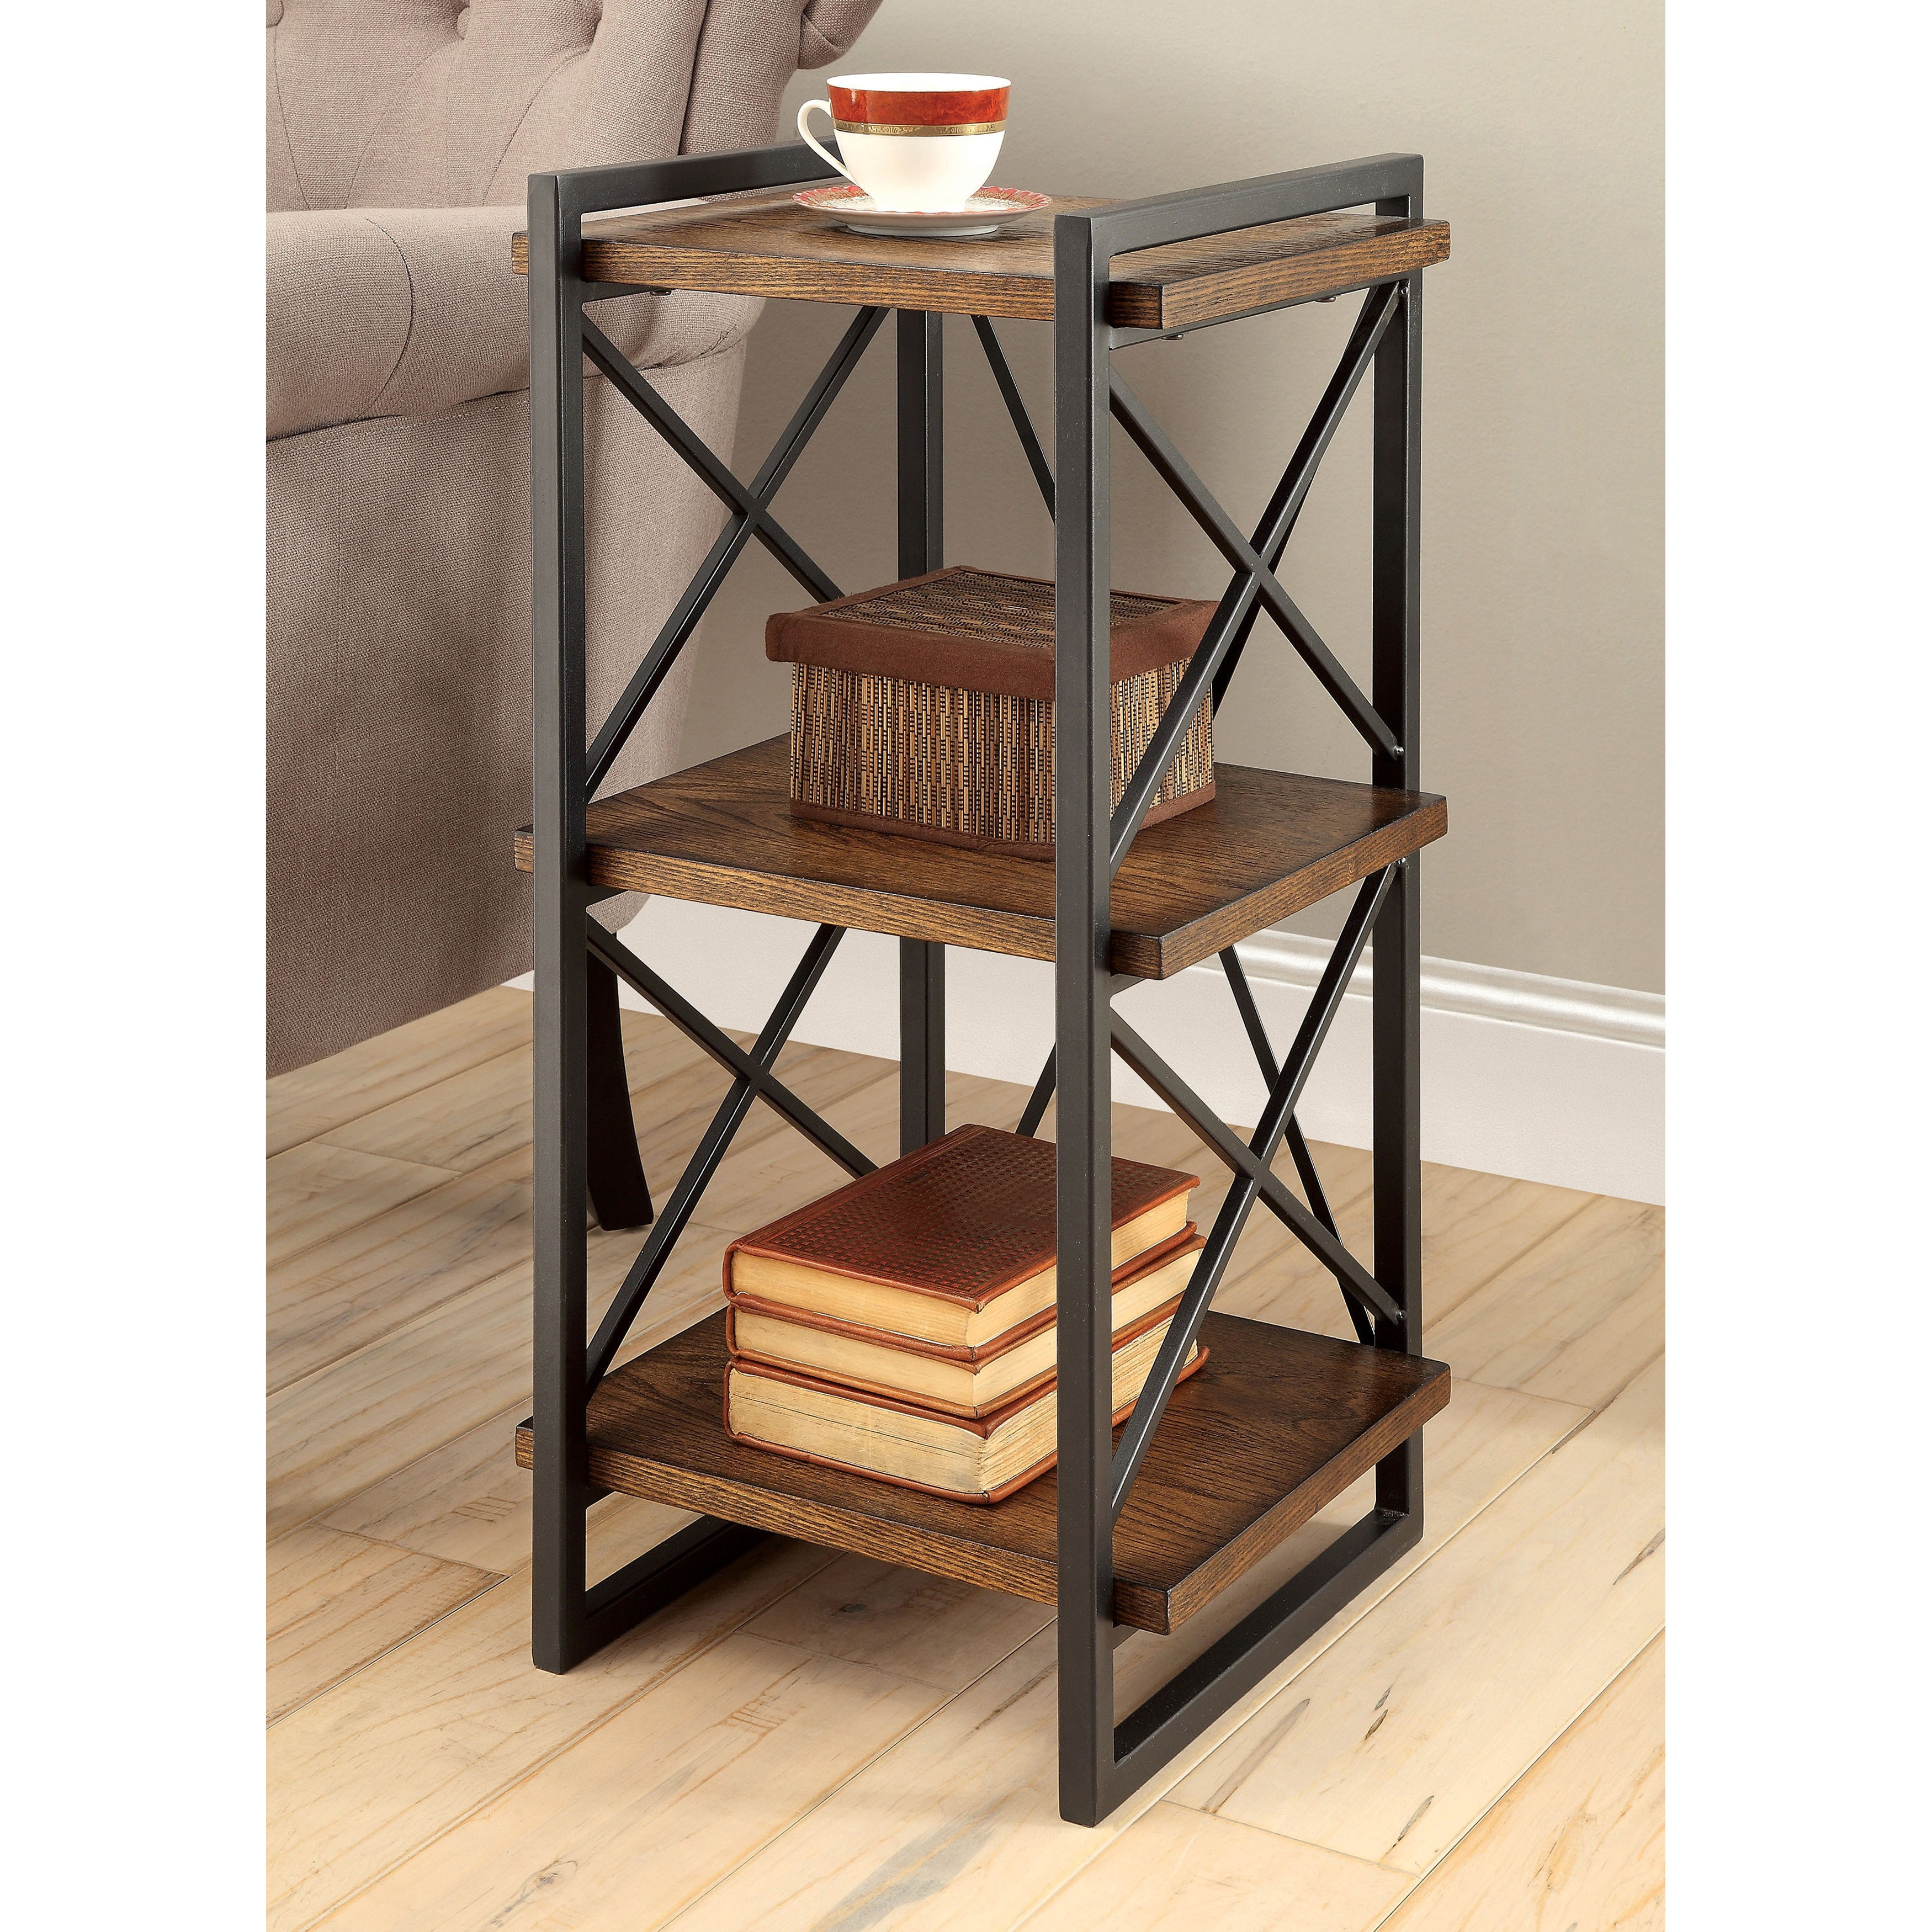 furniture america collins industrial medium weathered oak tier end table tiered metal accent free shipping today folding kmart kids asian drum bottle wine rack modern legs black